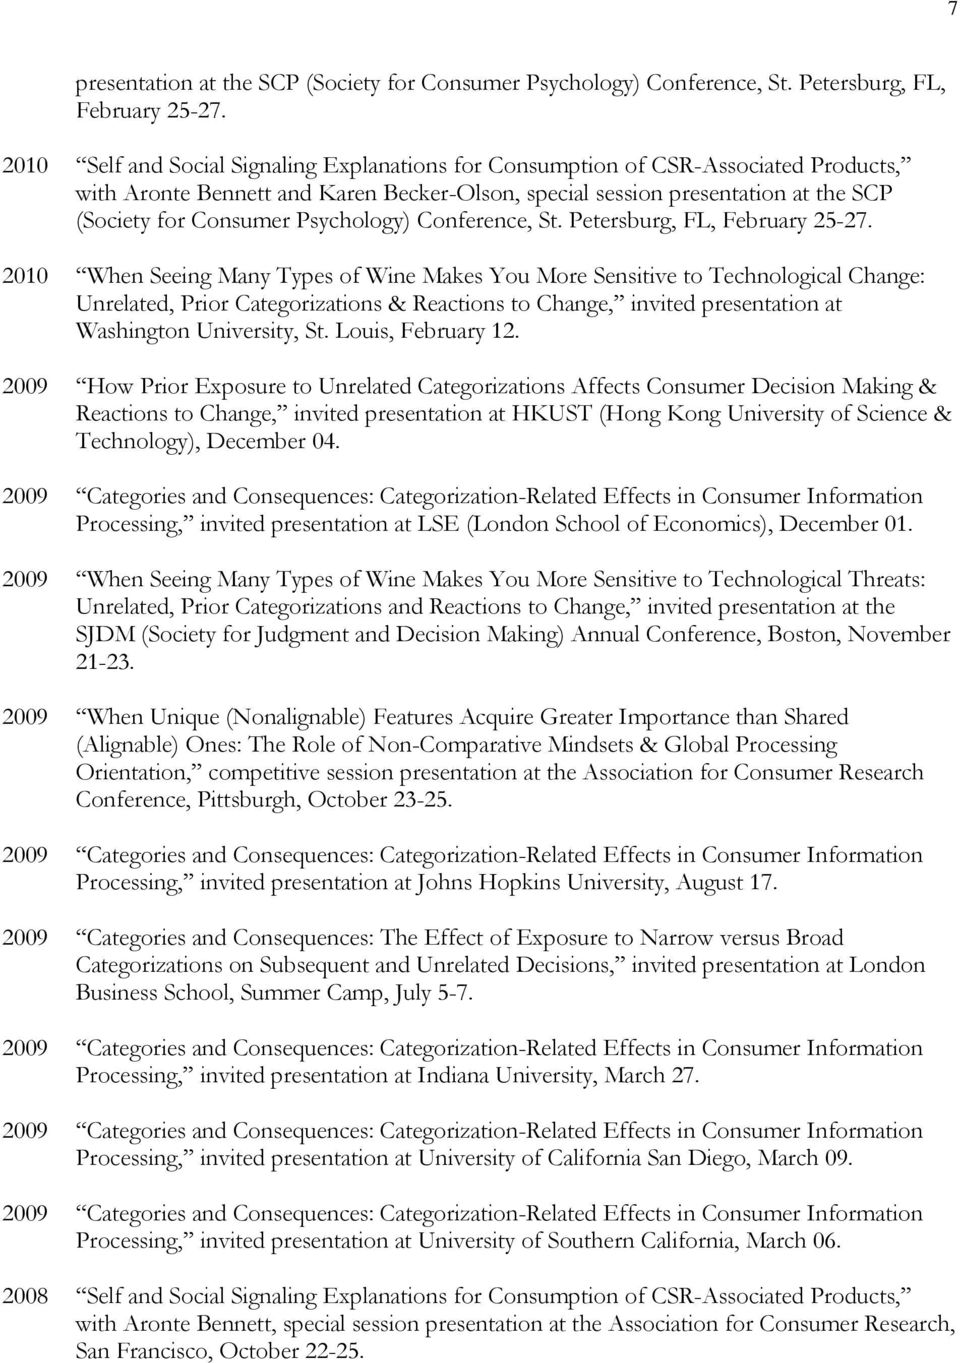 Psychology) Conference, St. Petersburg, FL, February 25-27. Unrelated, Prior Categorizations & Reactions to Change, invited presentation at Washington University, St. Louis, February 12.